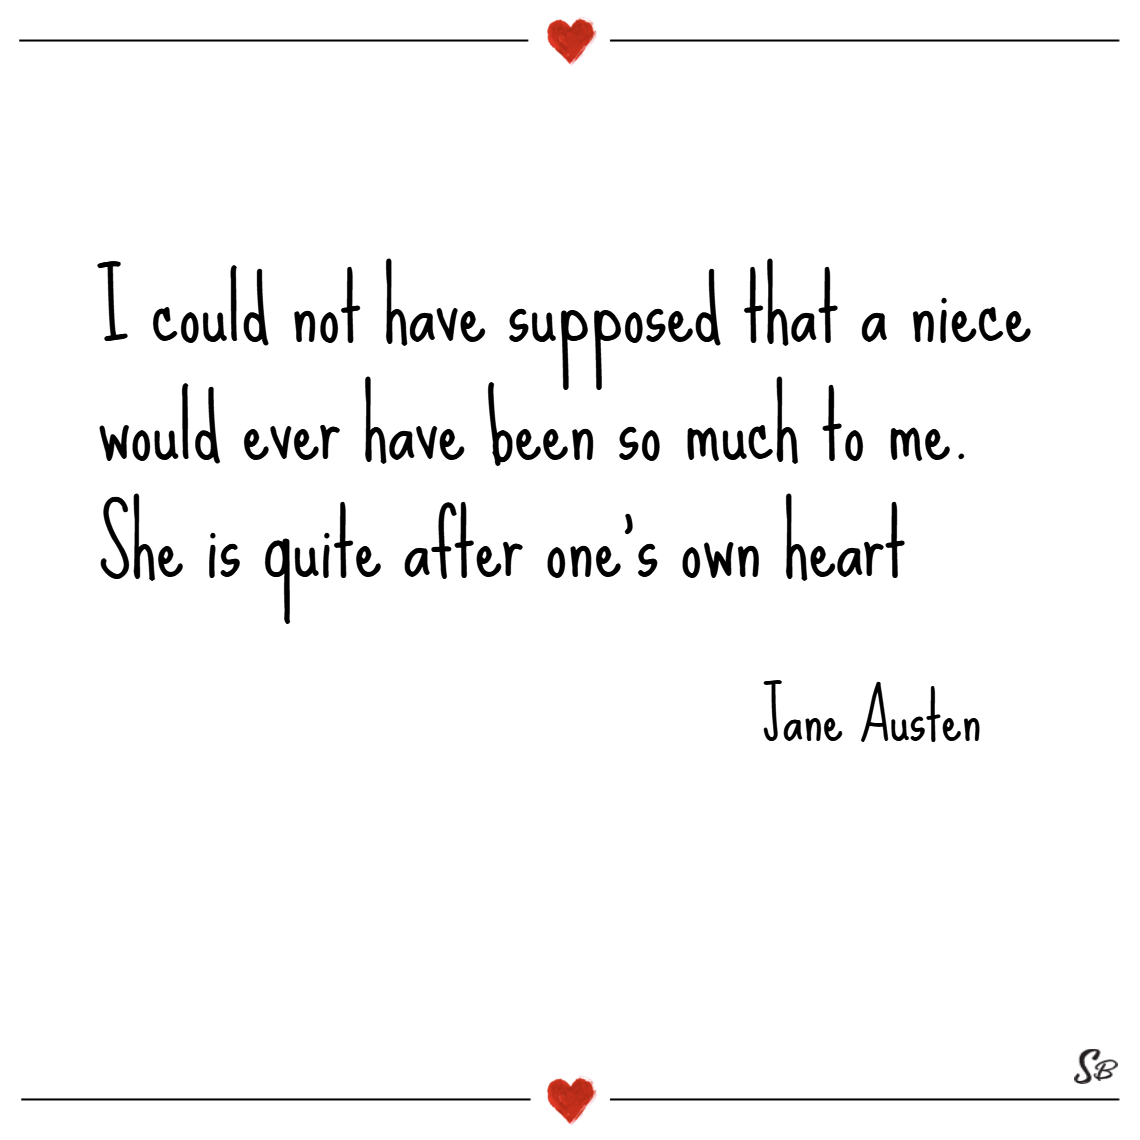 I could not have supposed that a niece would ever have been so much to me. she is quite after one's own heart. – jane austen niece quotes